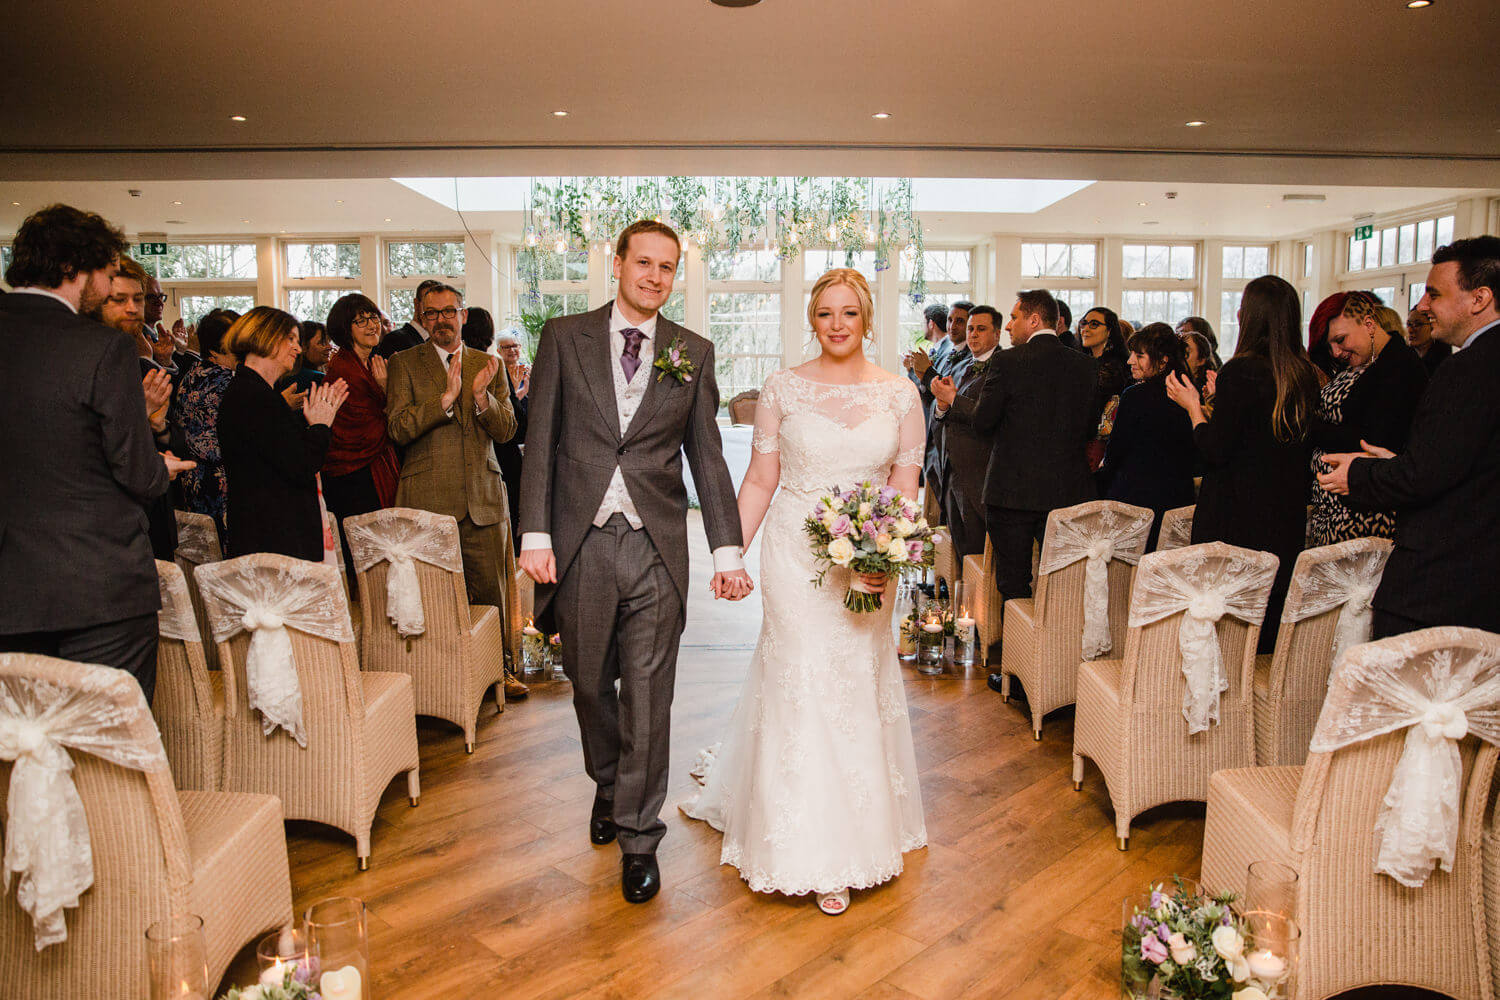 wide angle lens photograph of bride and groom holding hands after nuptials